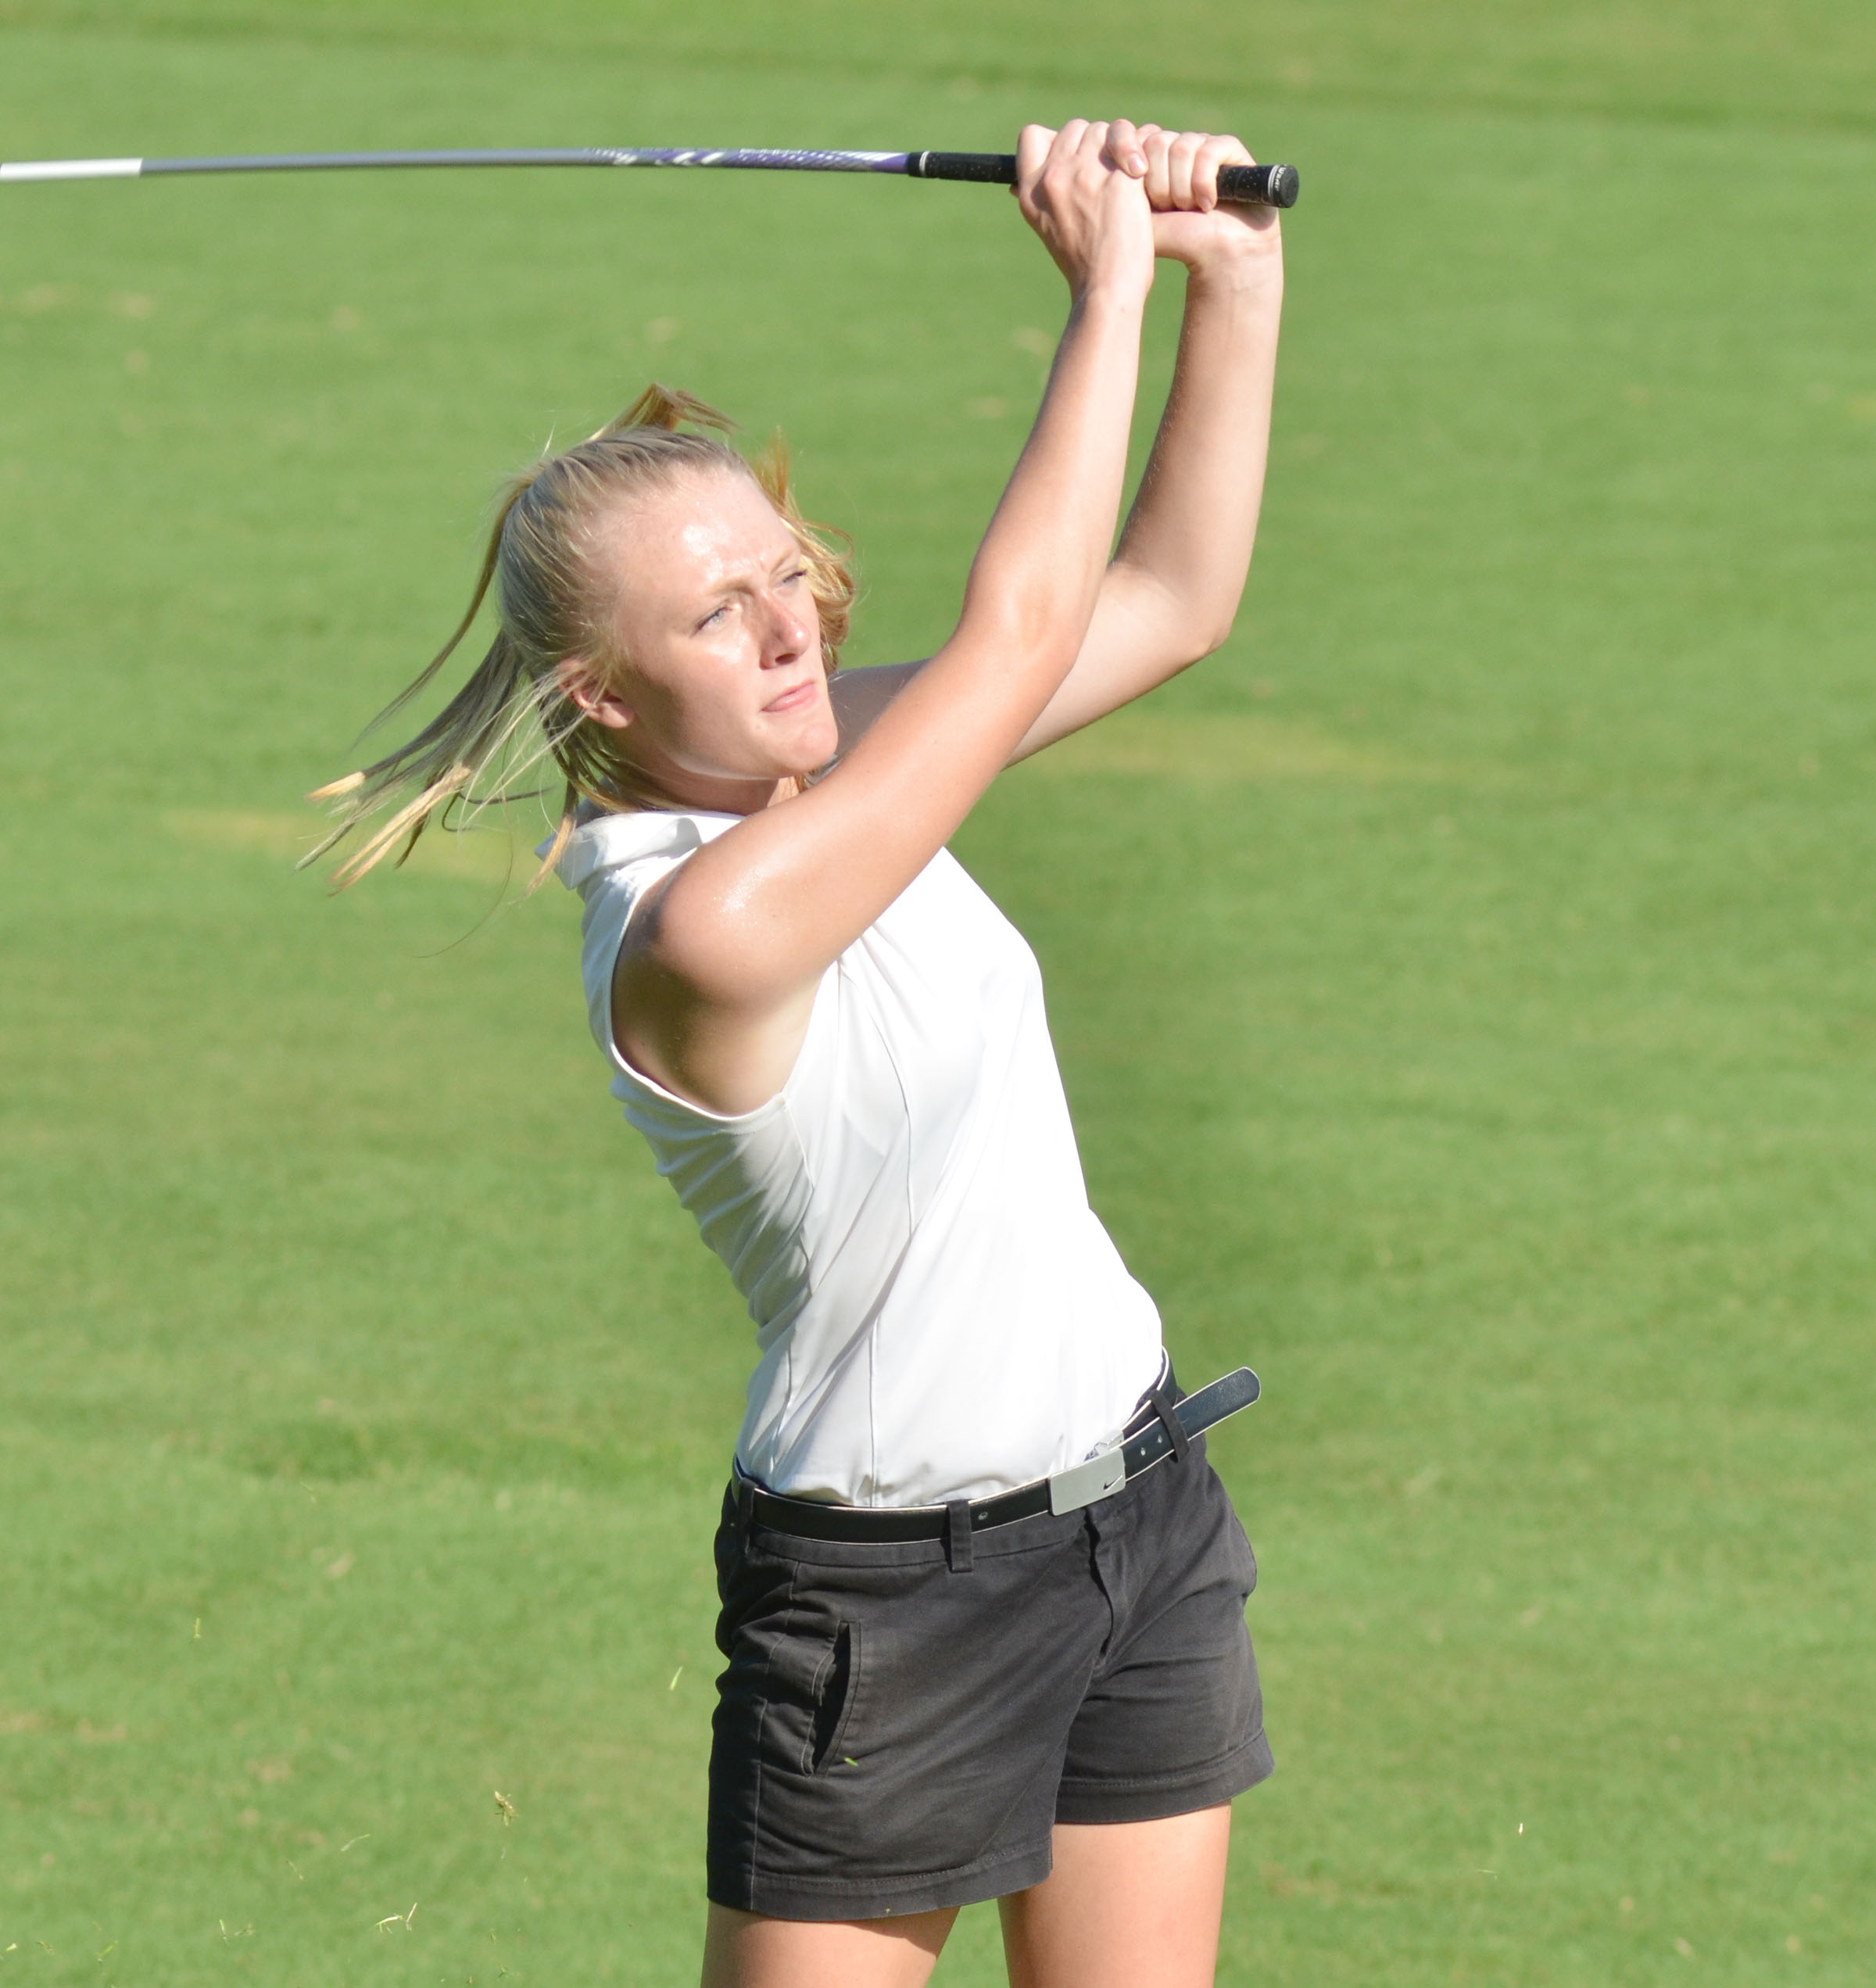 Campbellsville High School girls' golf player Abbie Dicken, a sophomore, recently competed at this year's region golf tournament and finished in 22nd place out of 64 competitors.